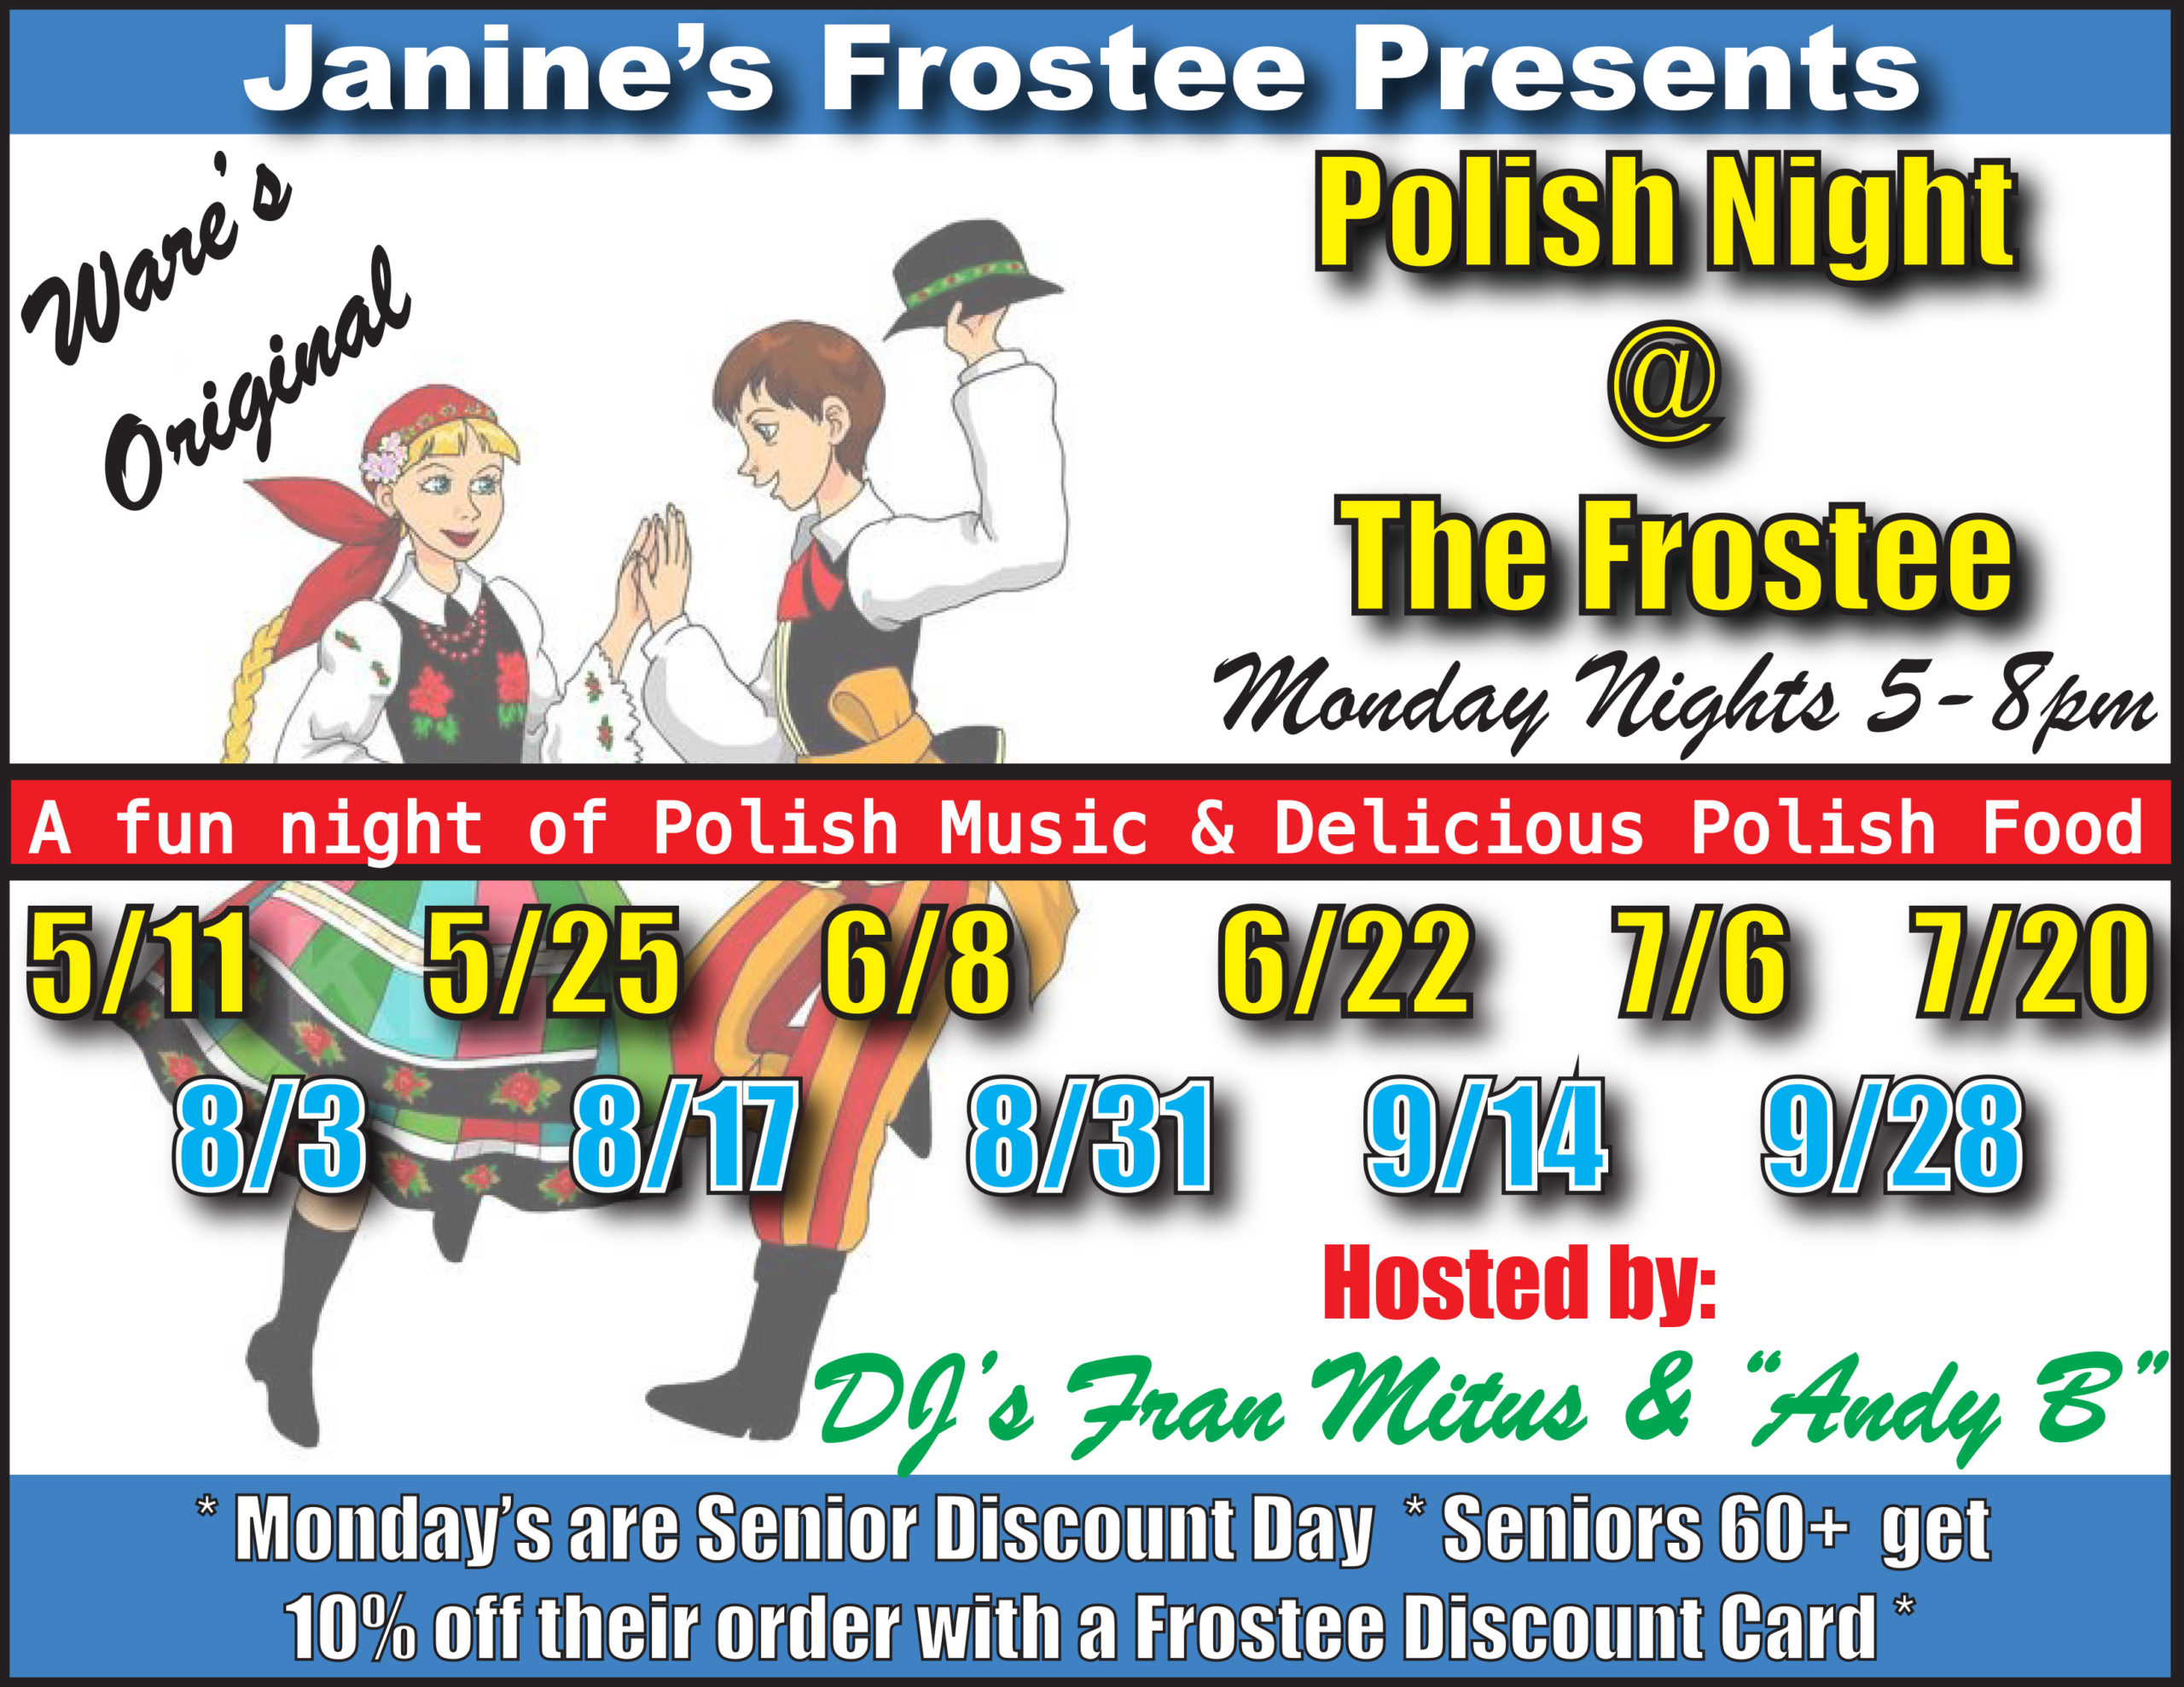 Polish Night @ Janine's Frostee